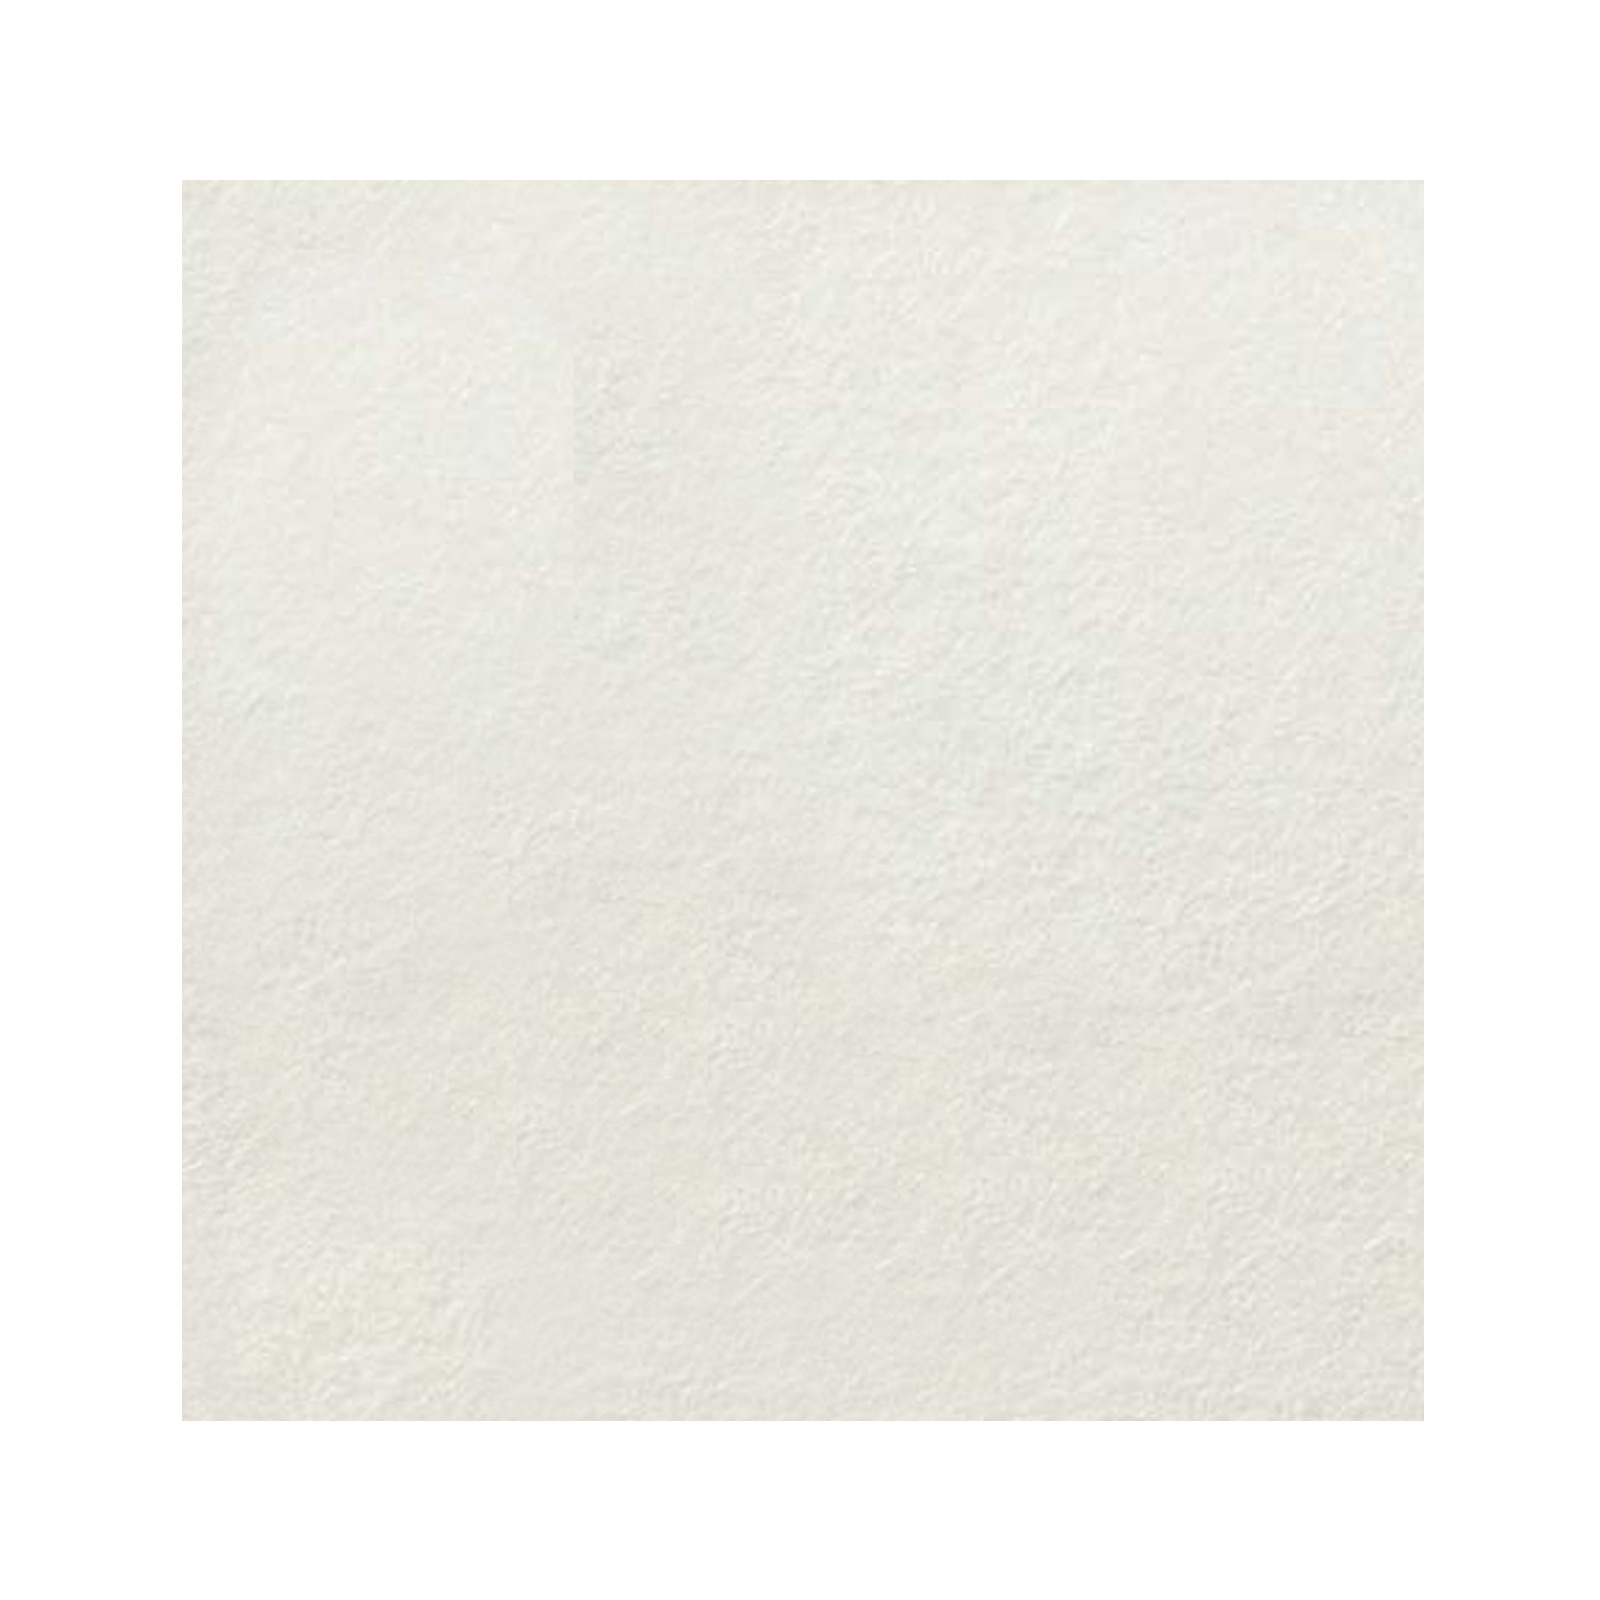 Awagami Mulberry 33 45GSM 25X33 Off White